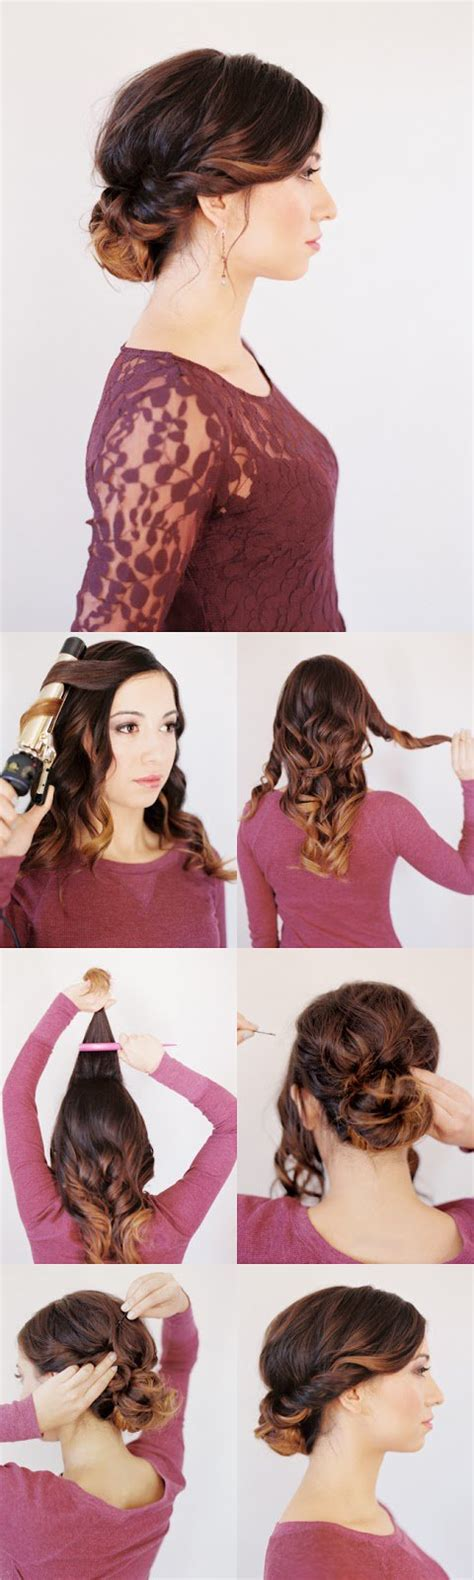 Twisted Updo Hairstyles by 20 Easy Hairstyle Tutorials For Your Everyday Look